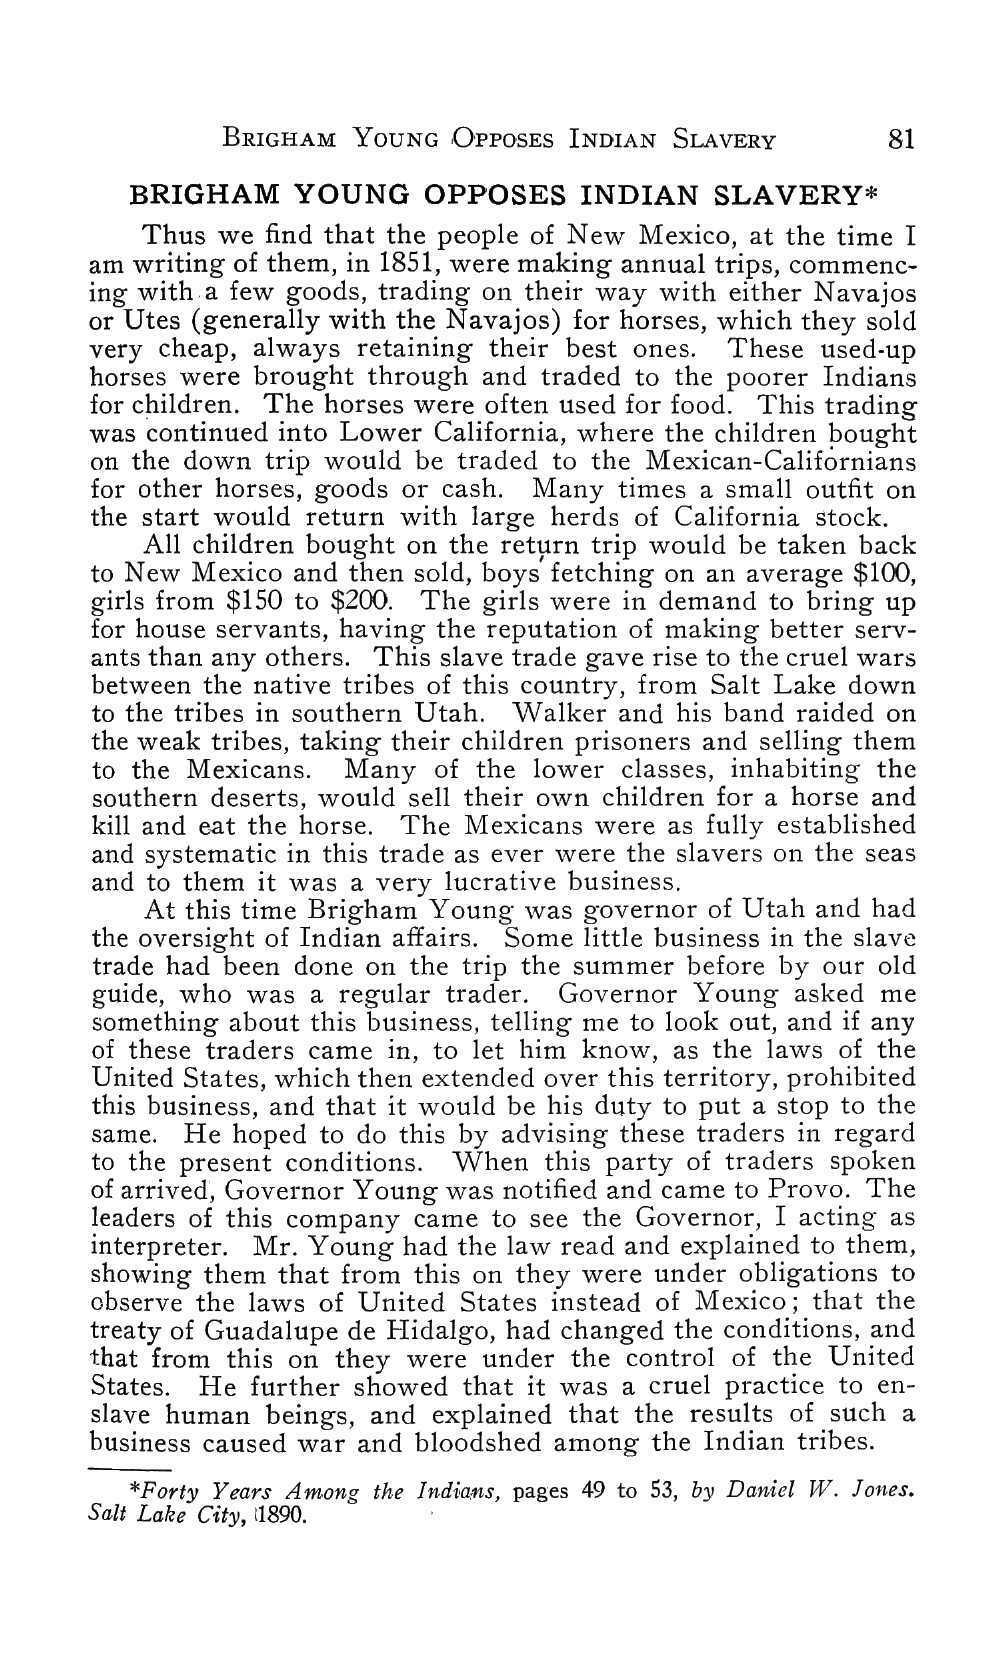 Page 84 of Brigham Young Opposes Indian Slavery